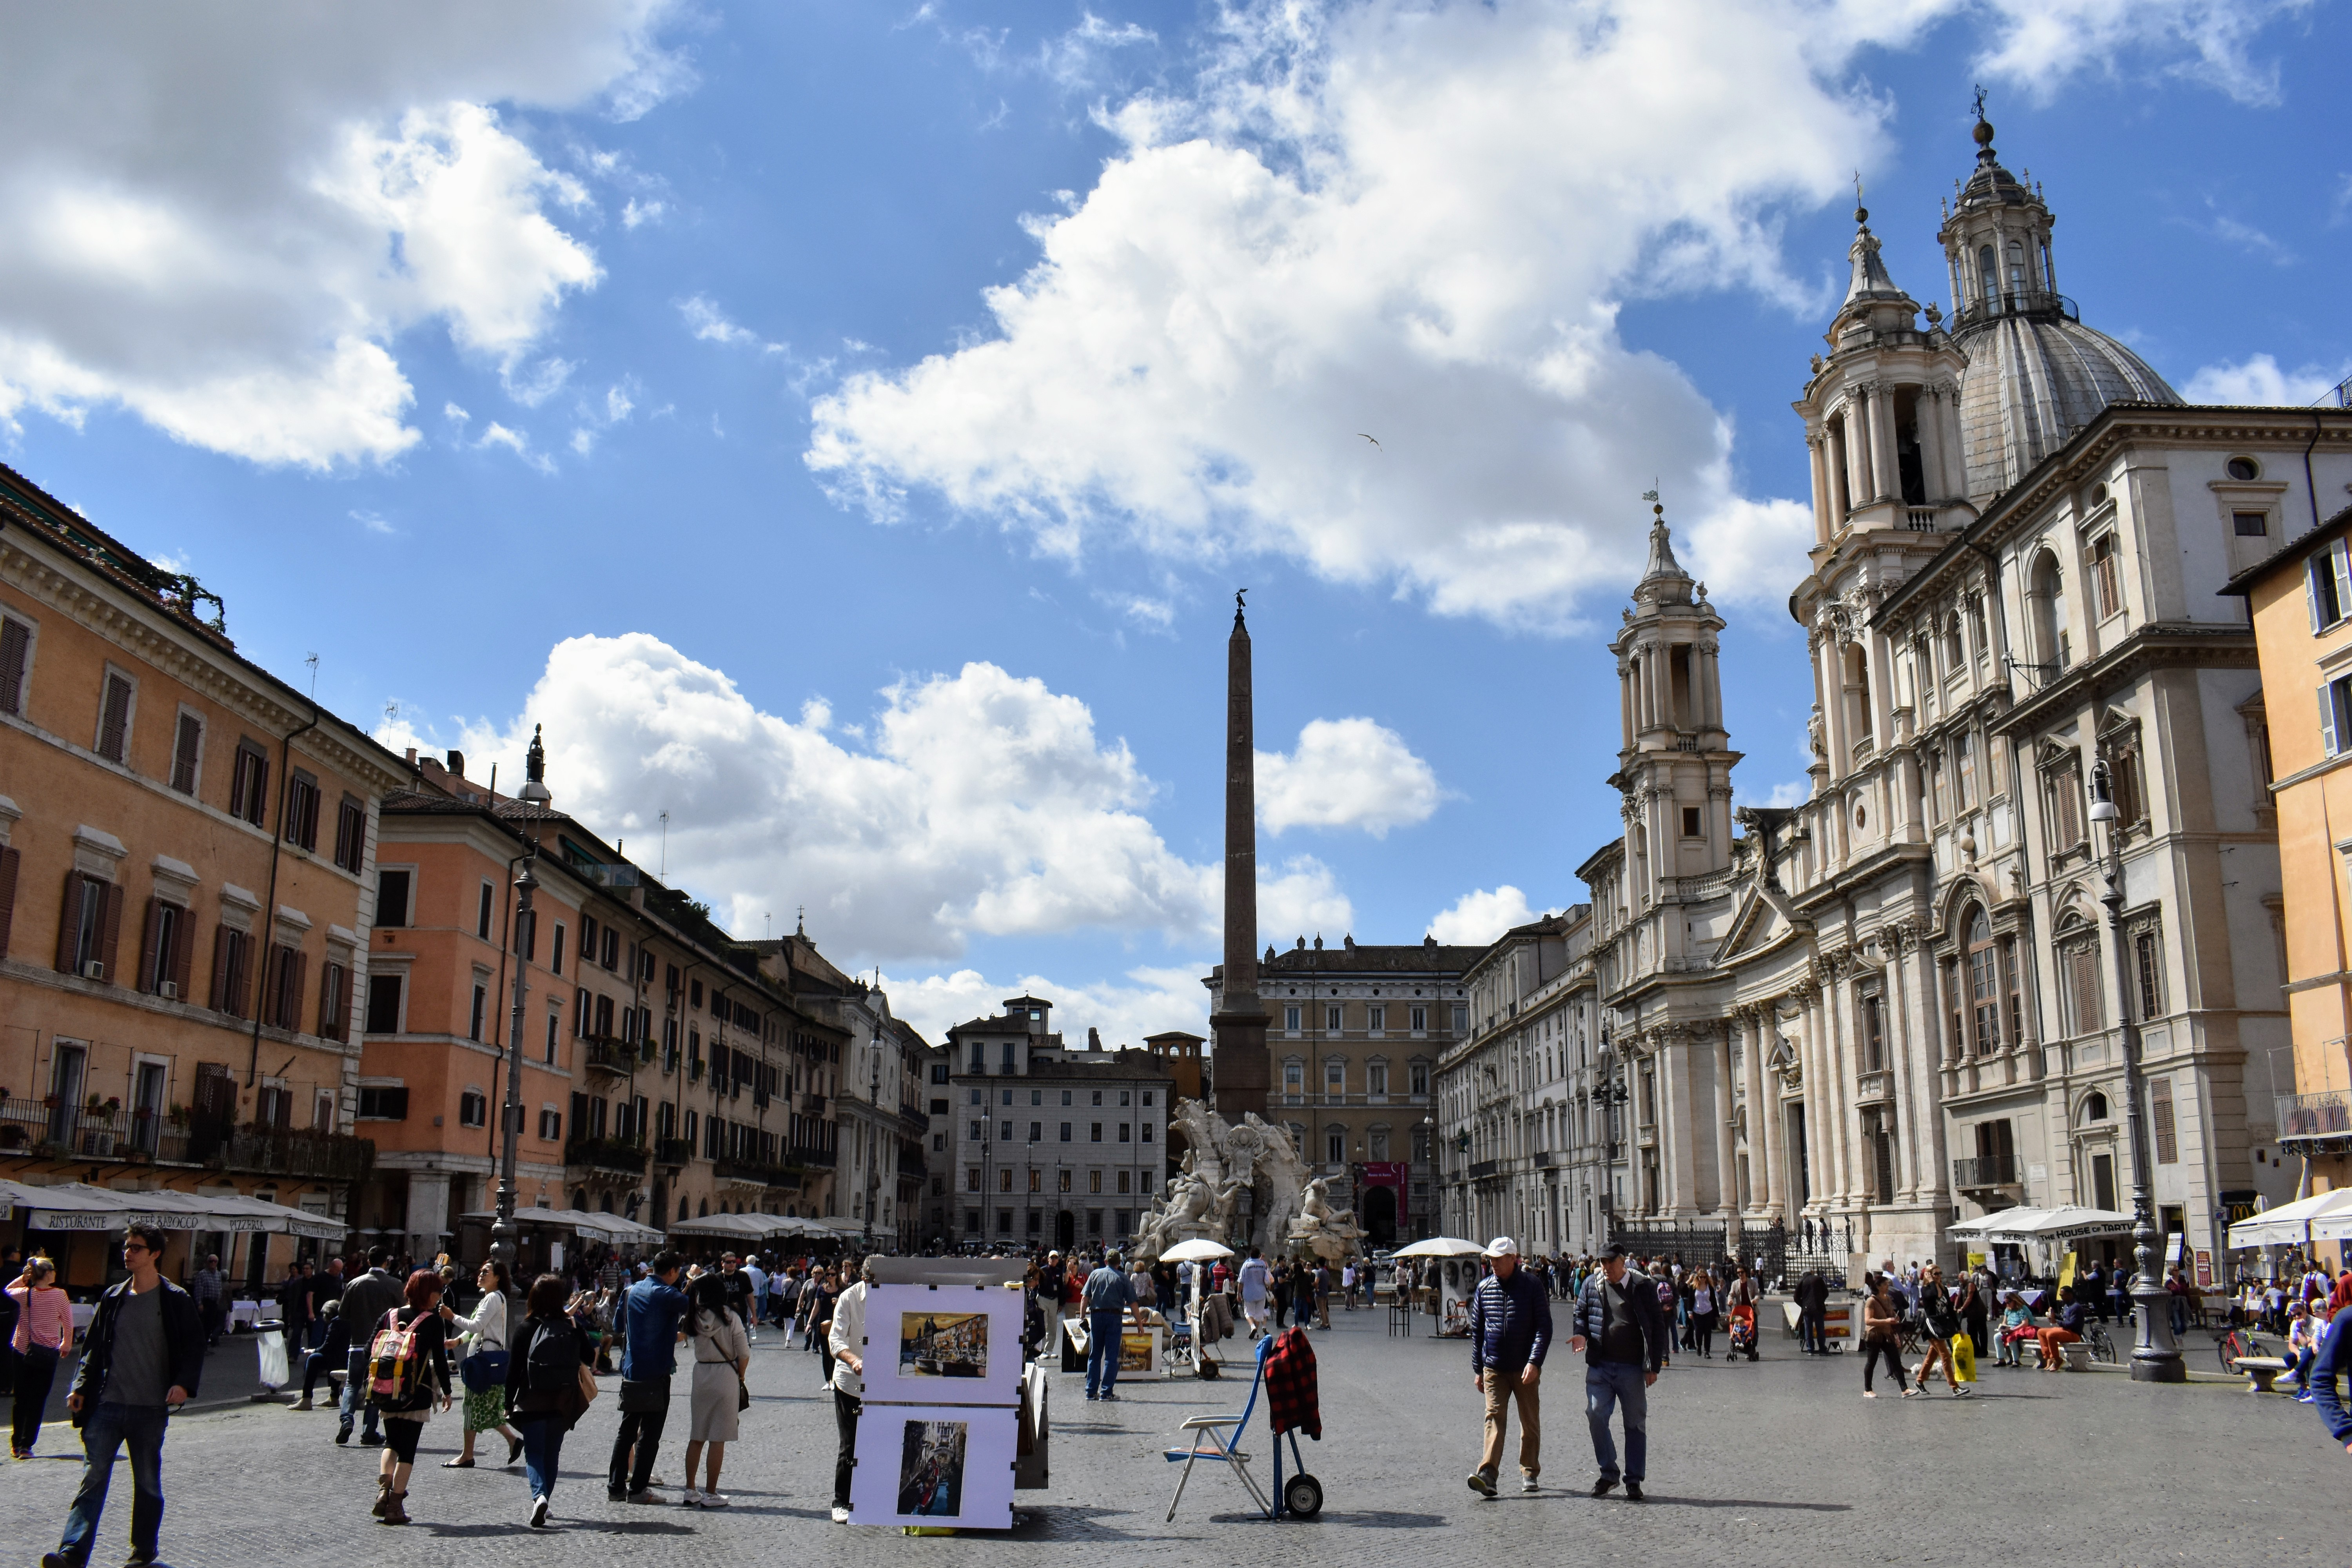 Historical Highlights of Rome - piazza navona